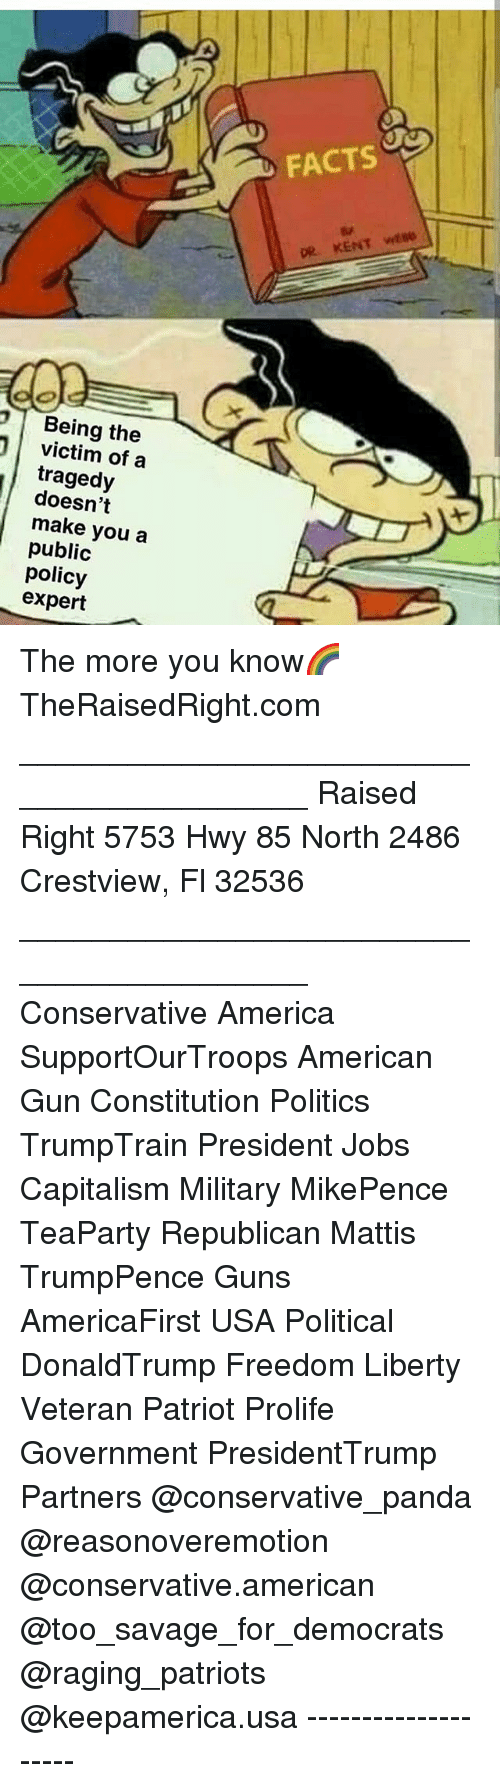 America, Facts, and Guns: FACTS  Being the  victim of a  tragedy  doesn't  make you a  public  policy  expert The more you know🌈 TheRaisedRight.com _________________________________________ Raised Right 5753 Hwy 85 North 2486 Crestview, Fl 32536 _________________________________________ Conservative America SupportOurTroops American Gun Constitution Politics TrumpTrain President Jobs Capitalism Military MikePence TeaParty Republican Mattis TrumpPence Guns AmericaFirst USA Political DonaldTrump Freedom Liberty Veteran Patriot Prolife Government PresidentTrump Partners @conservative_panda @reasonoveremotion @conservative.american @too_savage_for_democrats @raging_patriots @keepamerica.usa --------------------